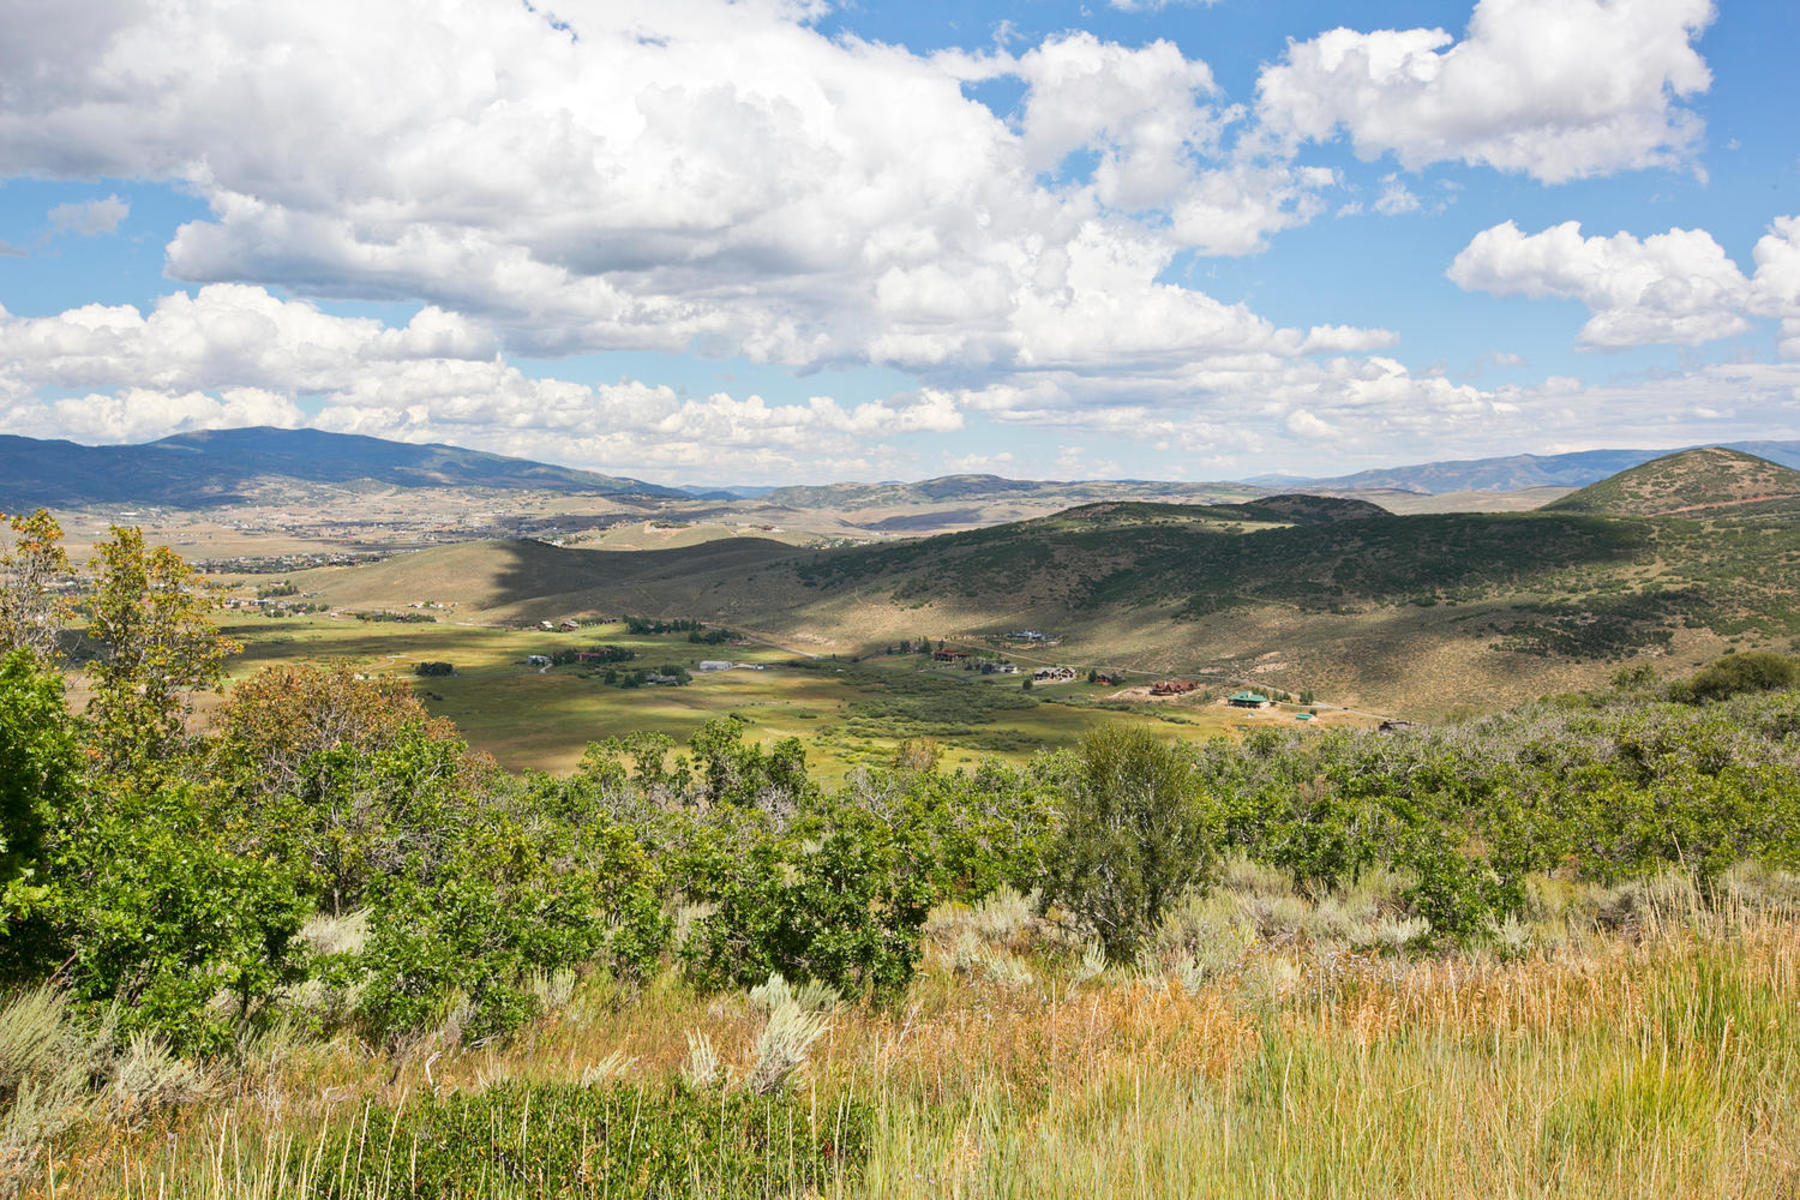 Terreno por un Venta en 2.44 Acre Building Lot in Park Meadows 310 W Mountain Top Dr Park City, Utah, 84060 Estados Unidos